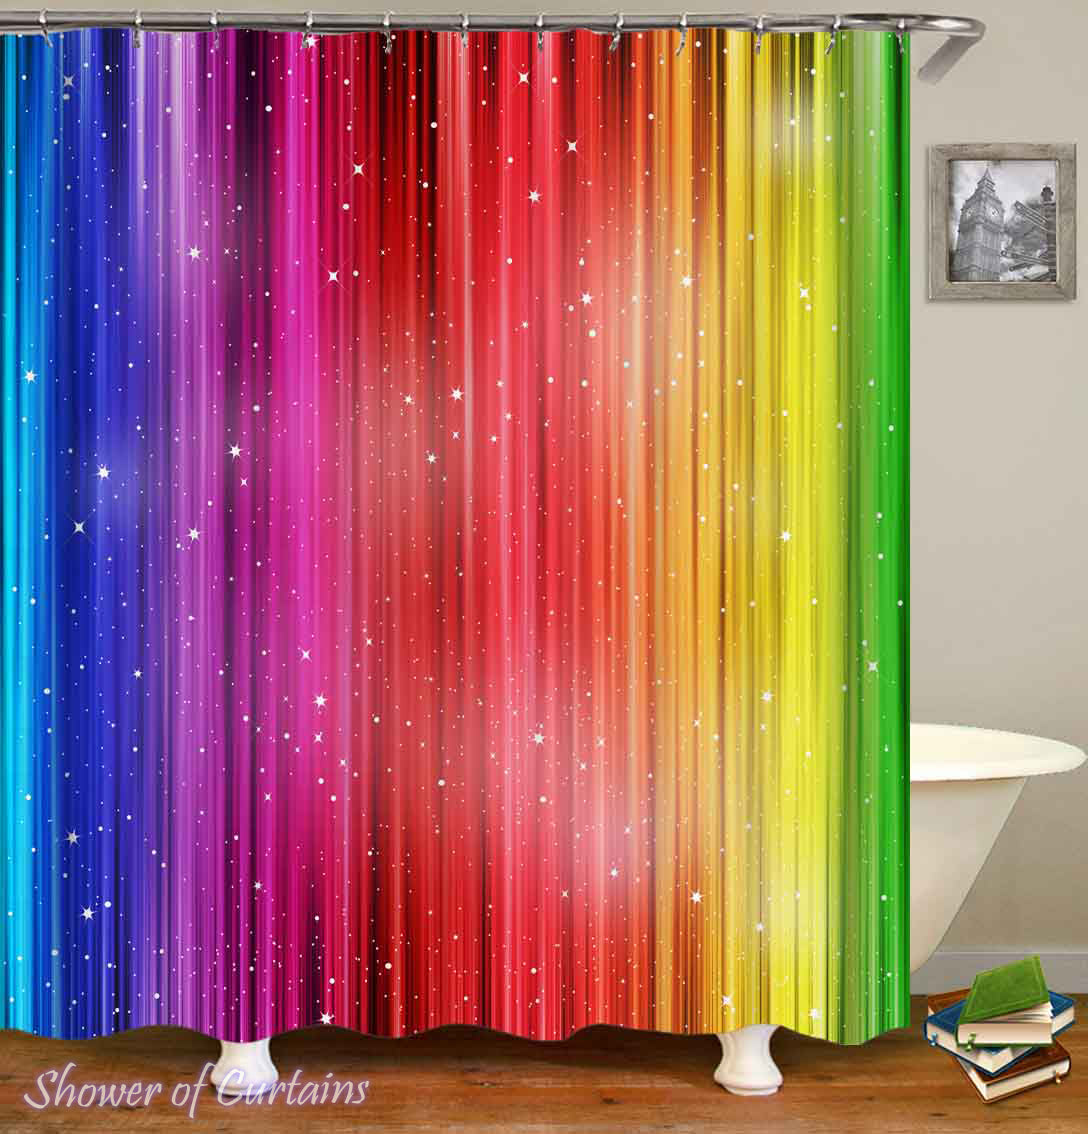 shower curtains of shining rainbow colors - Colorful Shower Curtains